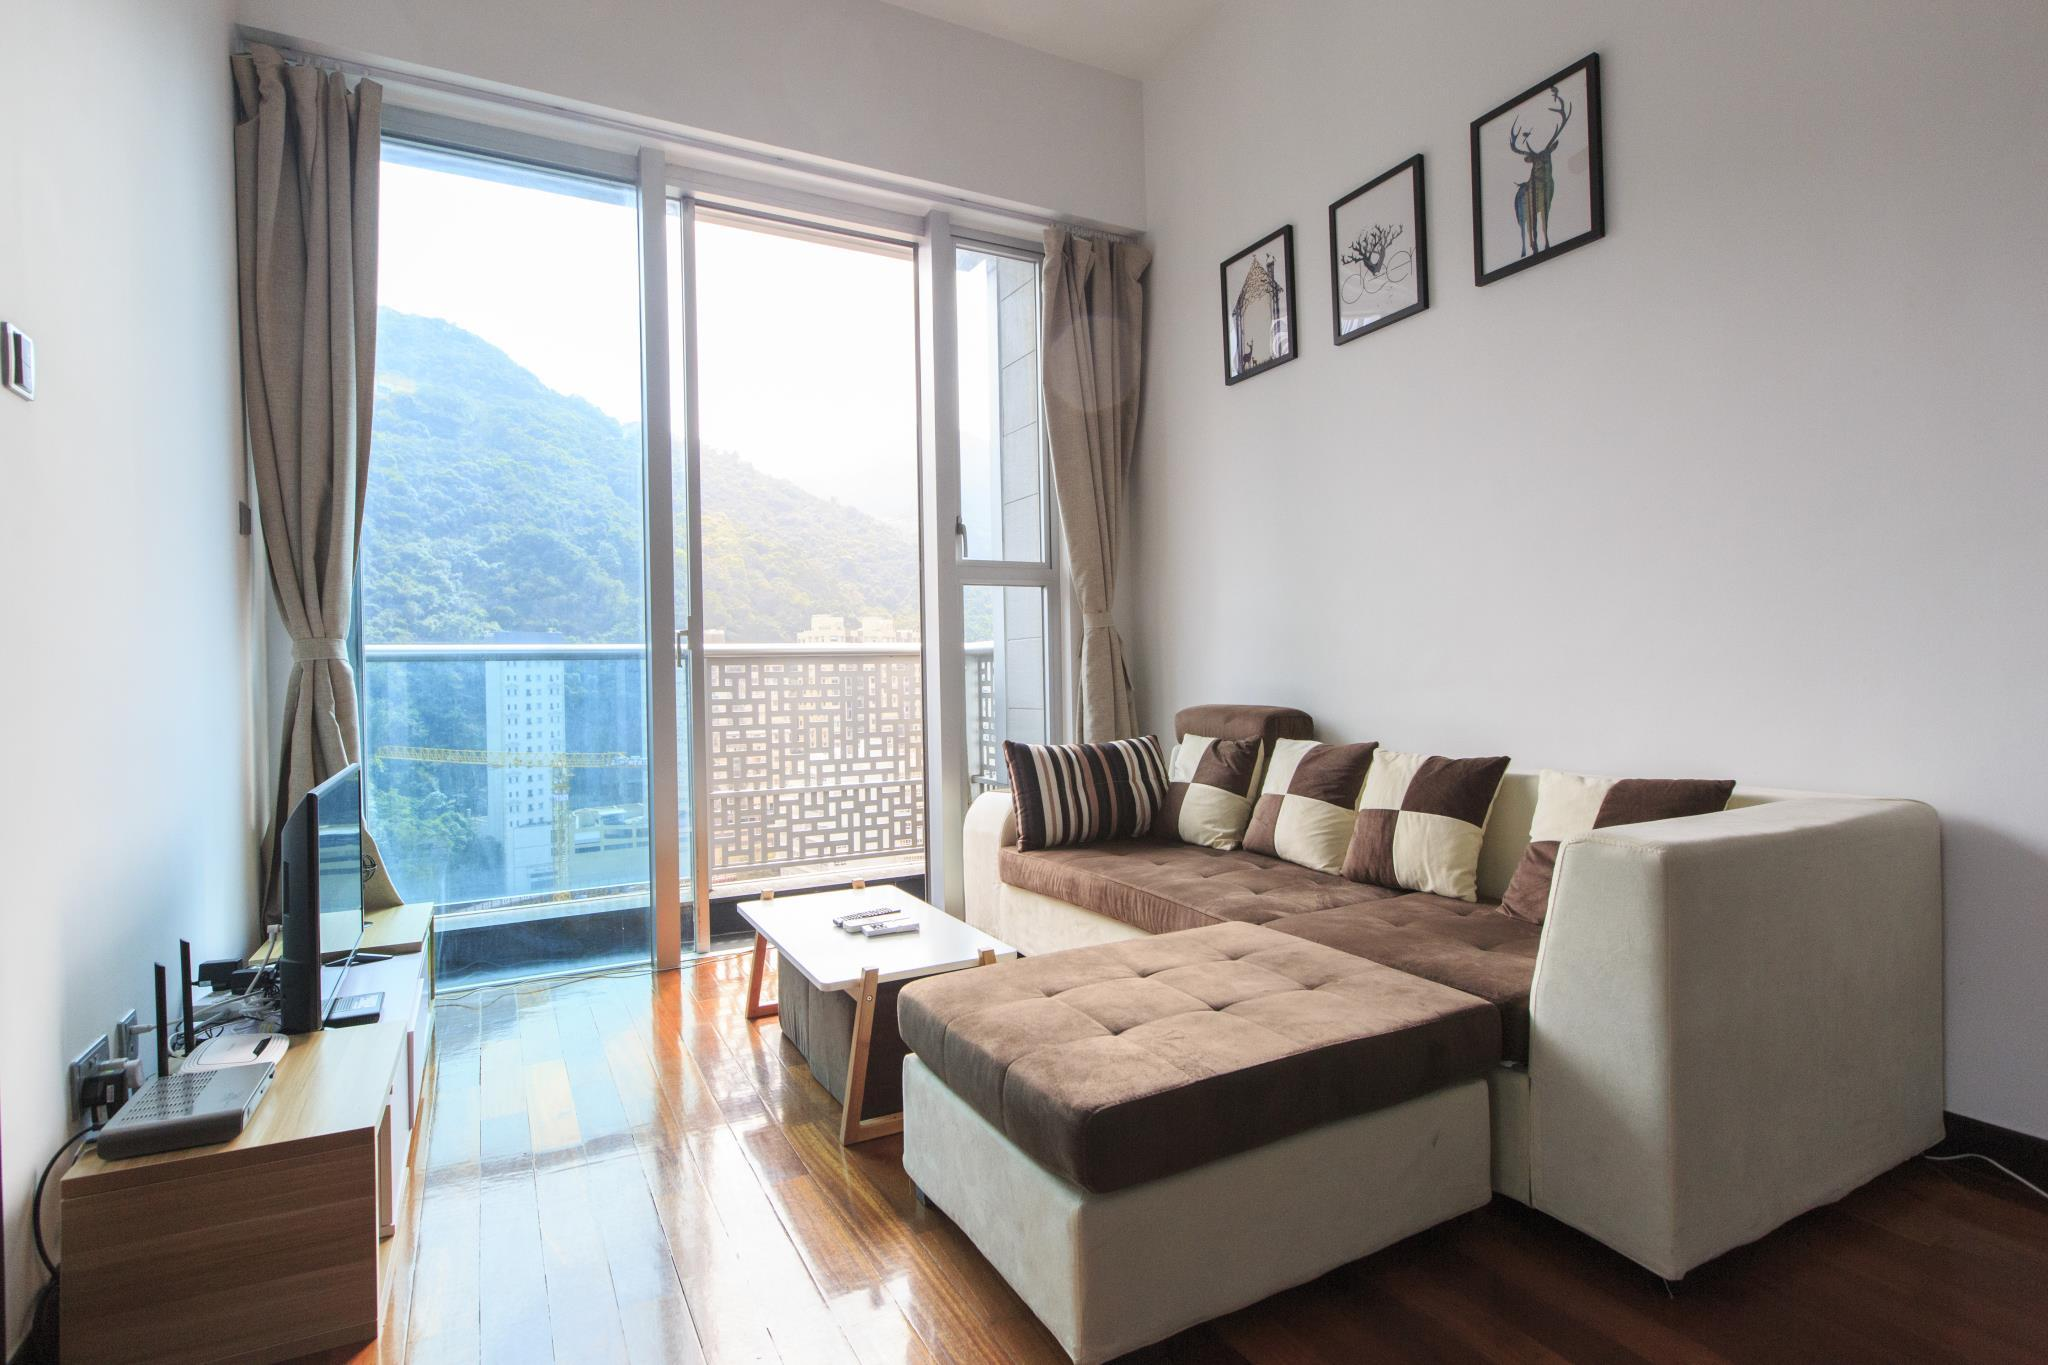 IC High Lv Apt With Gym And Pool 3min To MTR